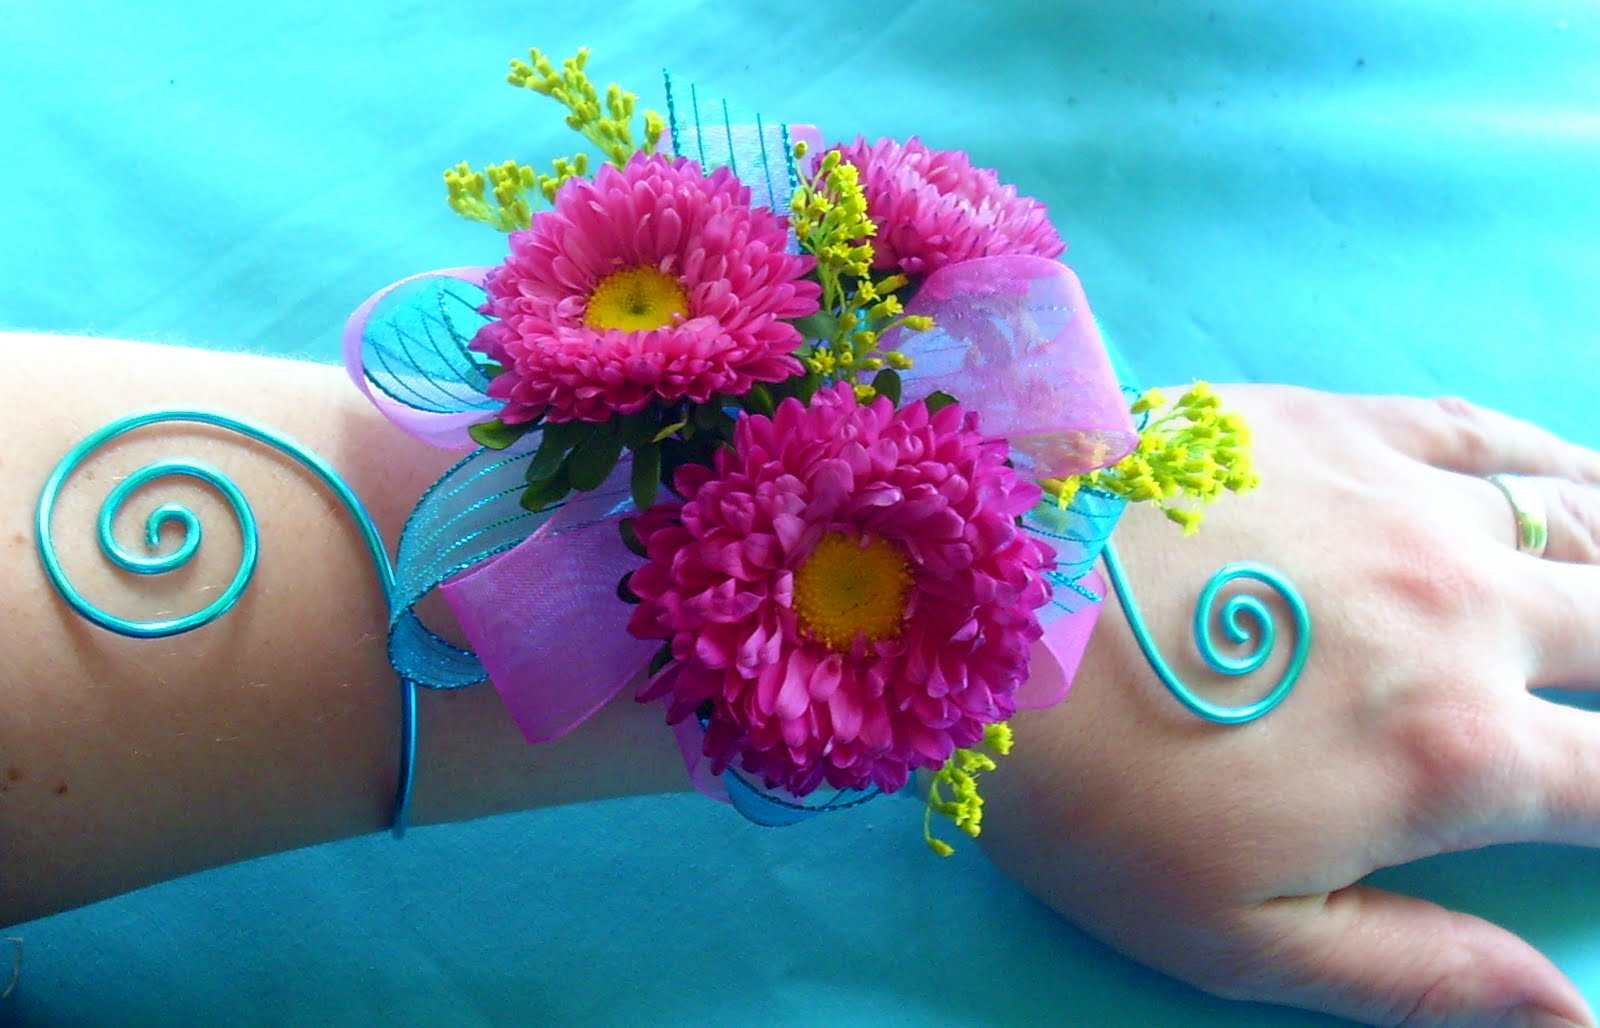 http://1.bp.blogspot.com/_VvQy1RggKnE/S9CTL6TD6MI/AAAAAAAAAB0/3WZFvtnY3-4/s1600/hot-pink-asters-turquoise-prom-wrist-corsage.jpg